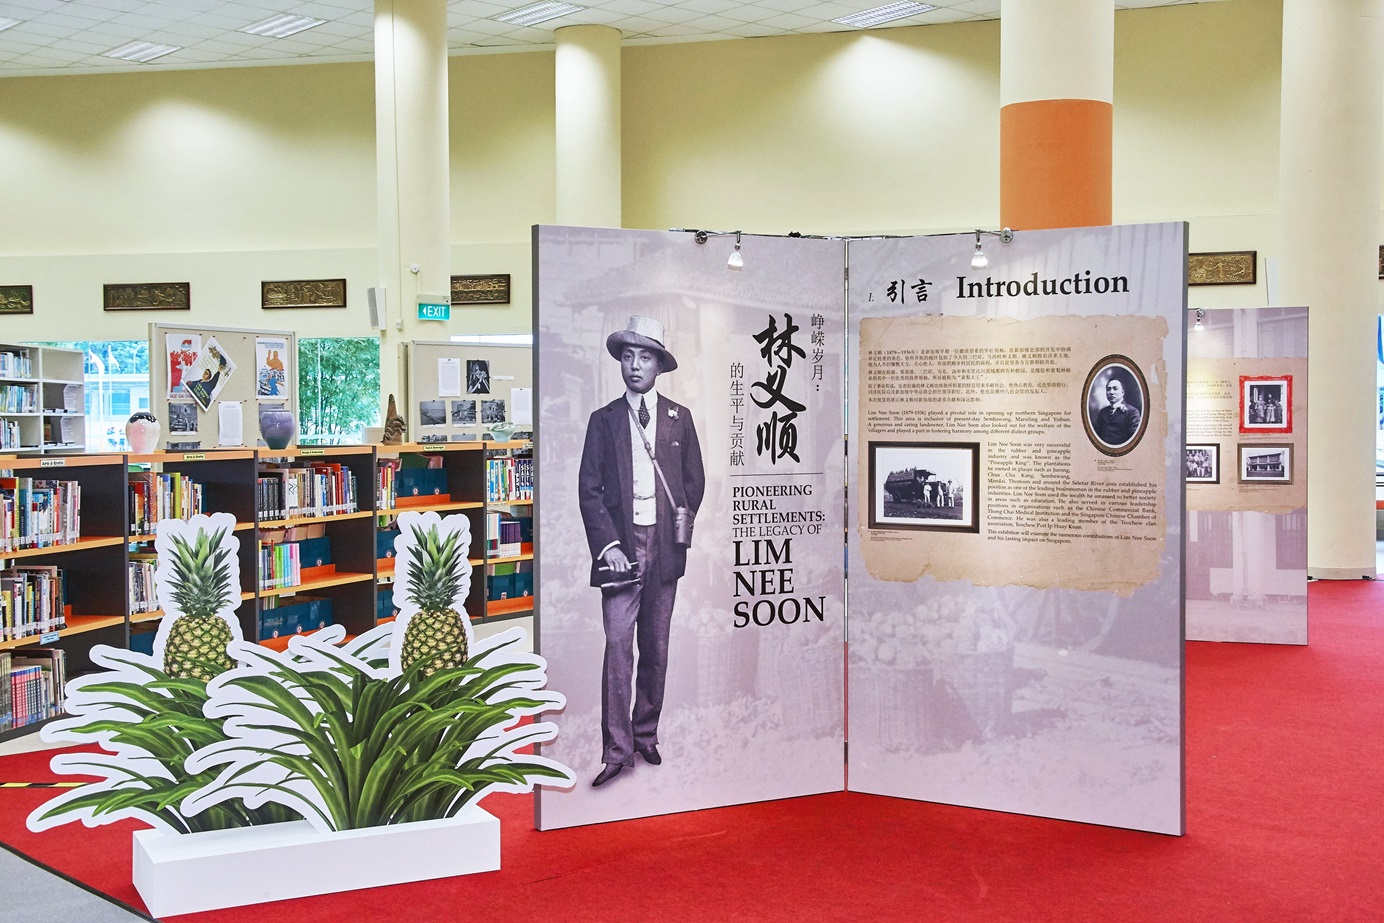 Travelling Exhibition - Pioneering Rural Settlements: The Legacy of Lim Nee Soon